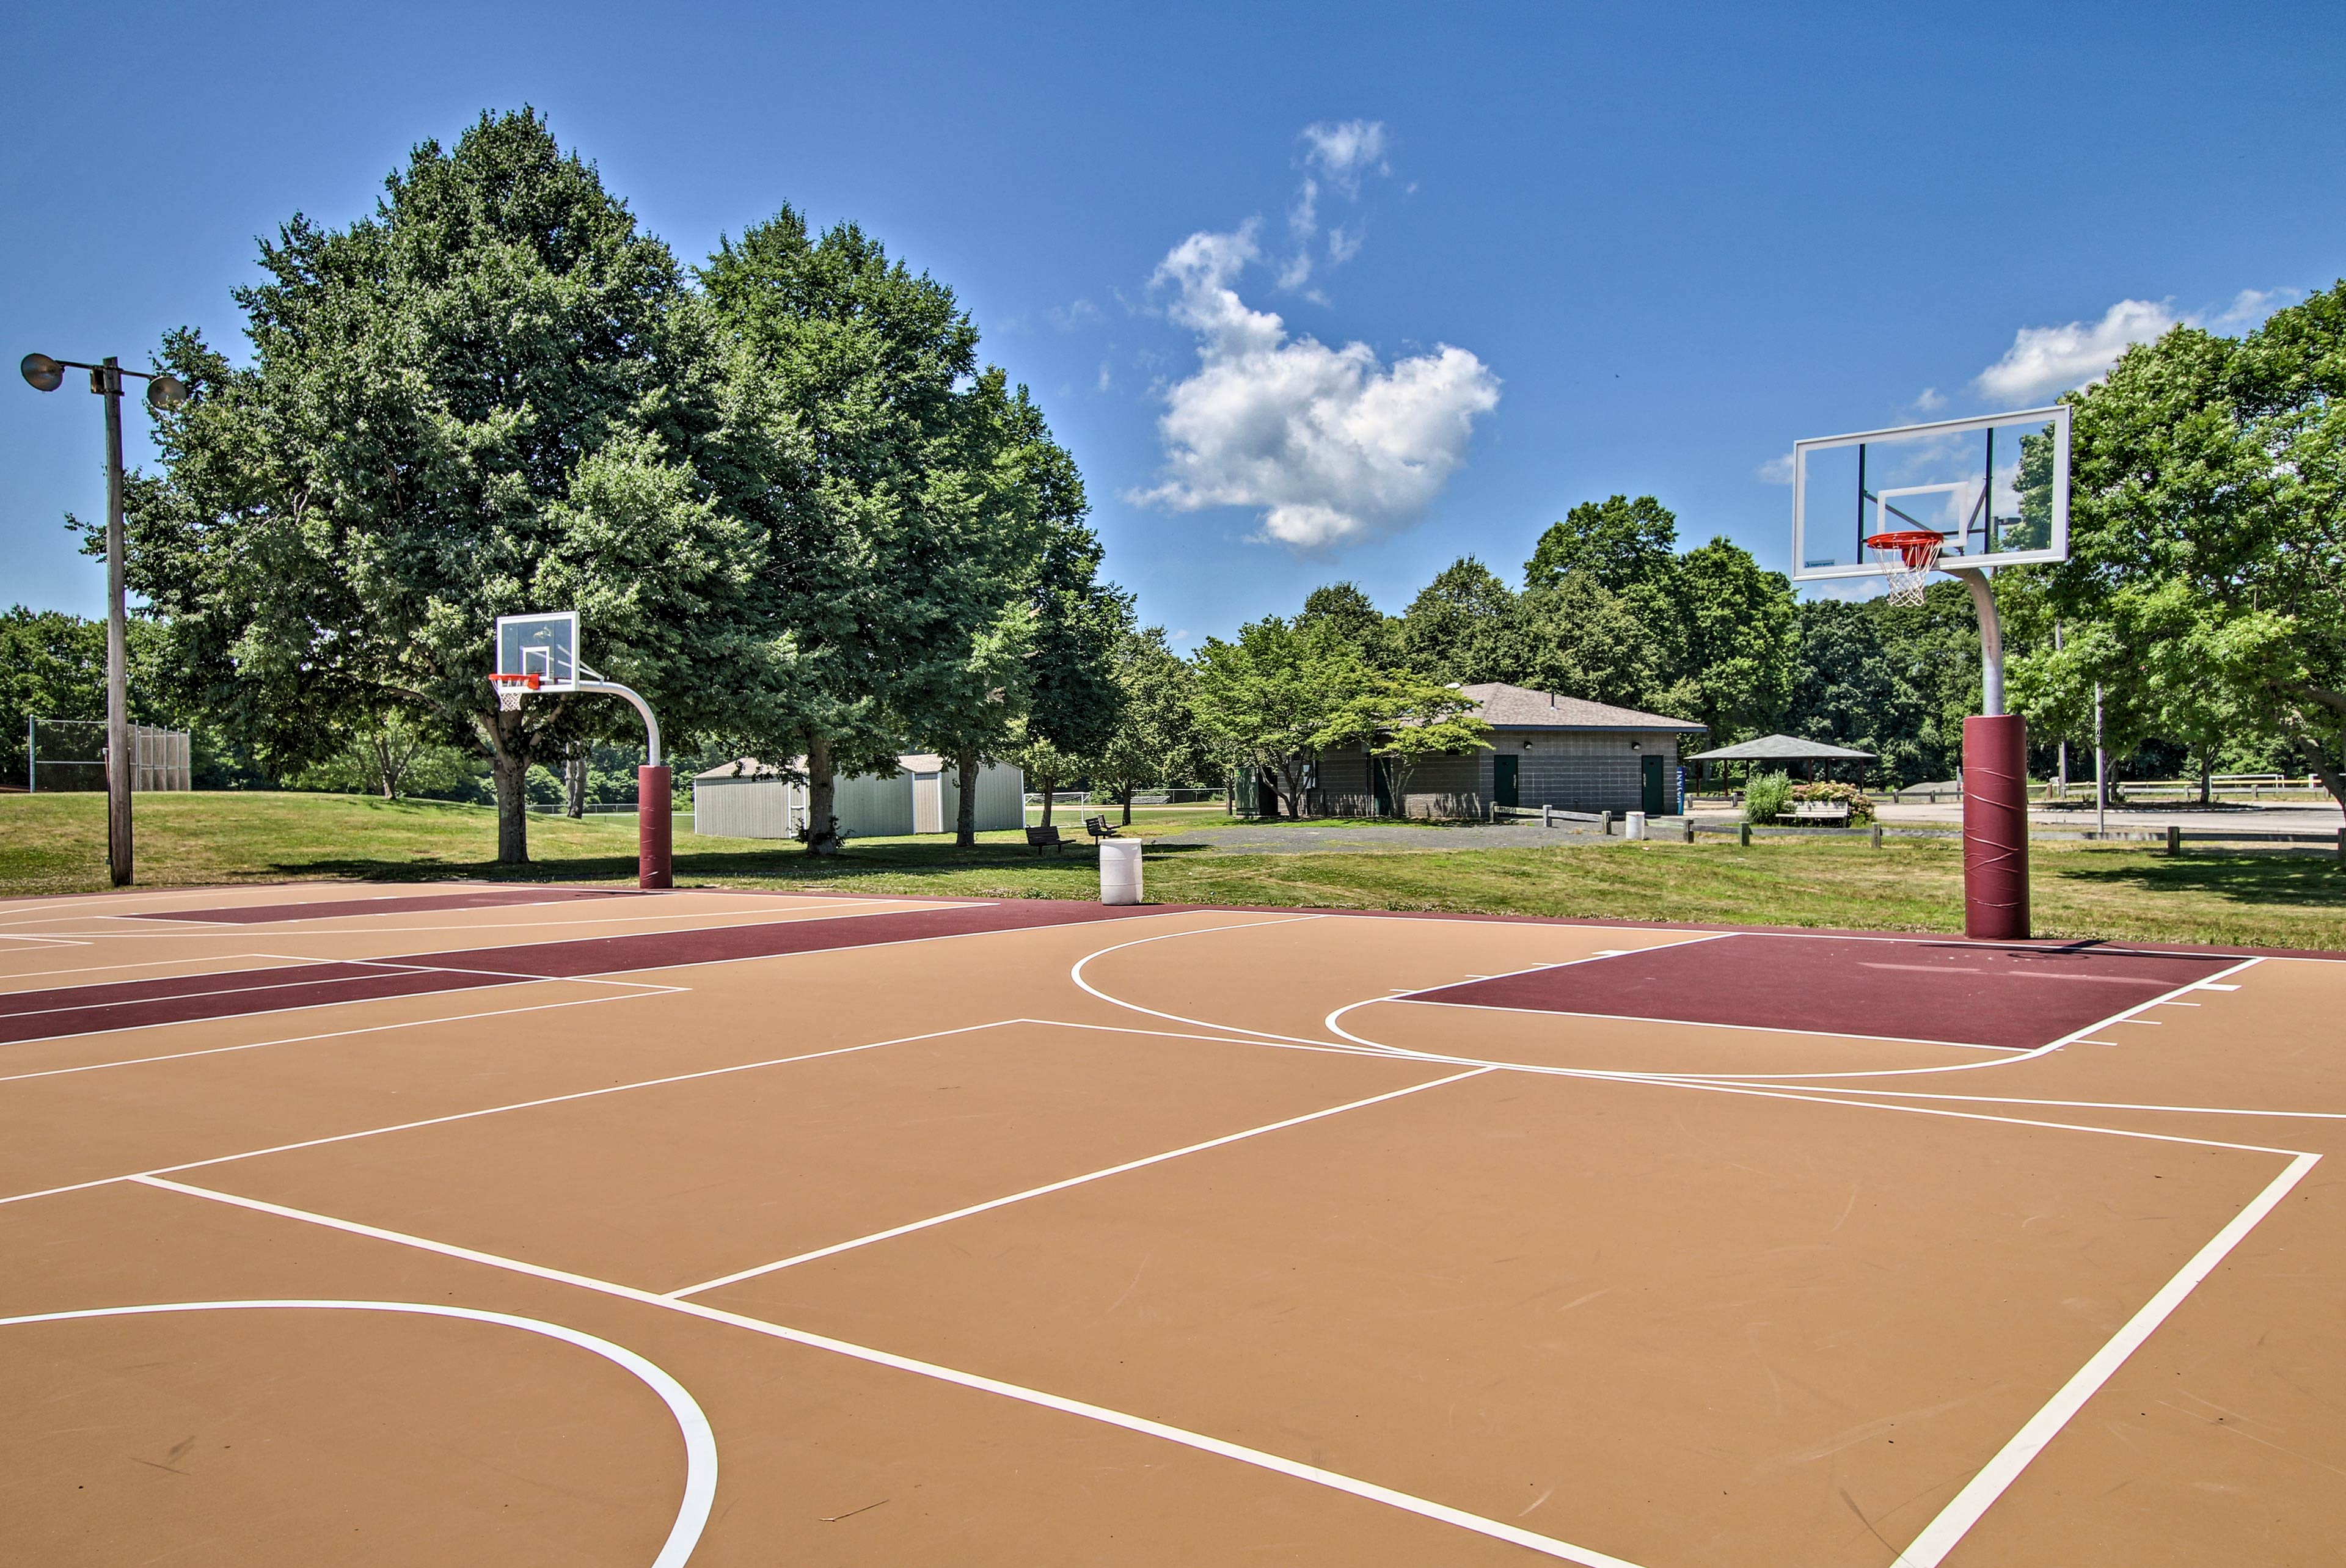 Shoot hoops with the kids at the nearby Rocky Neck State Park!